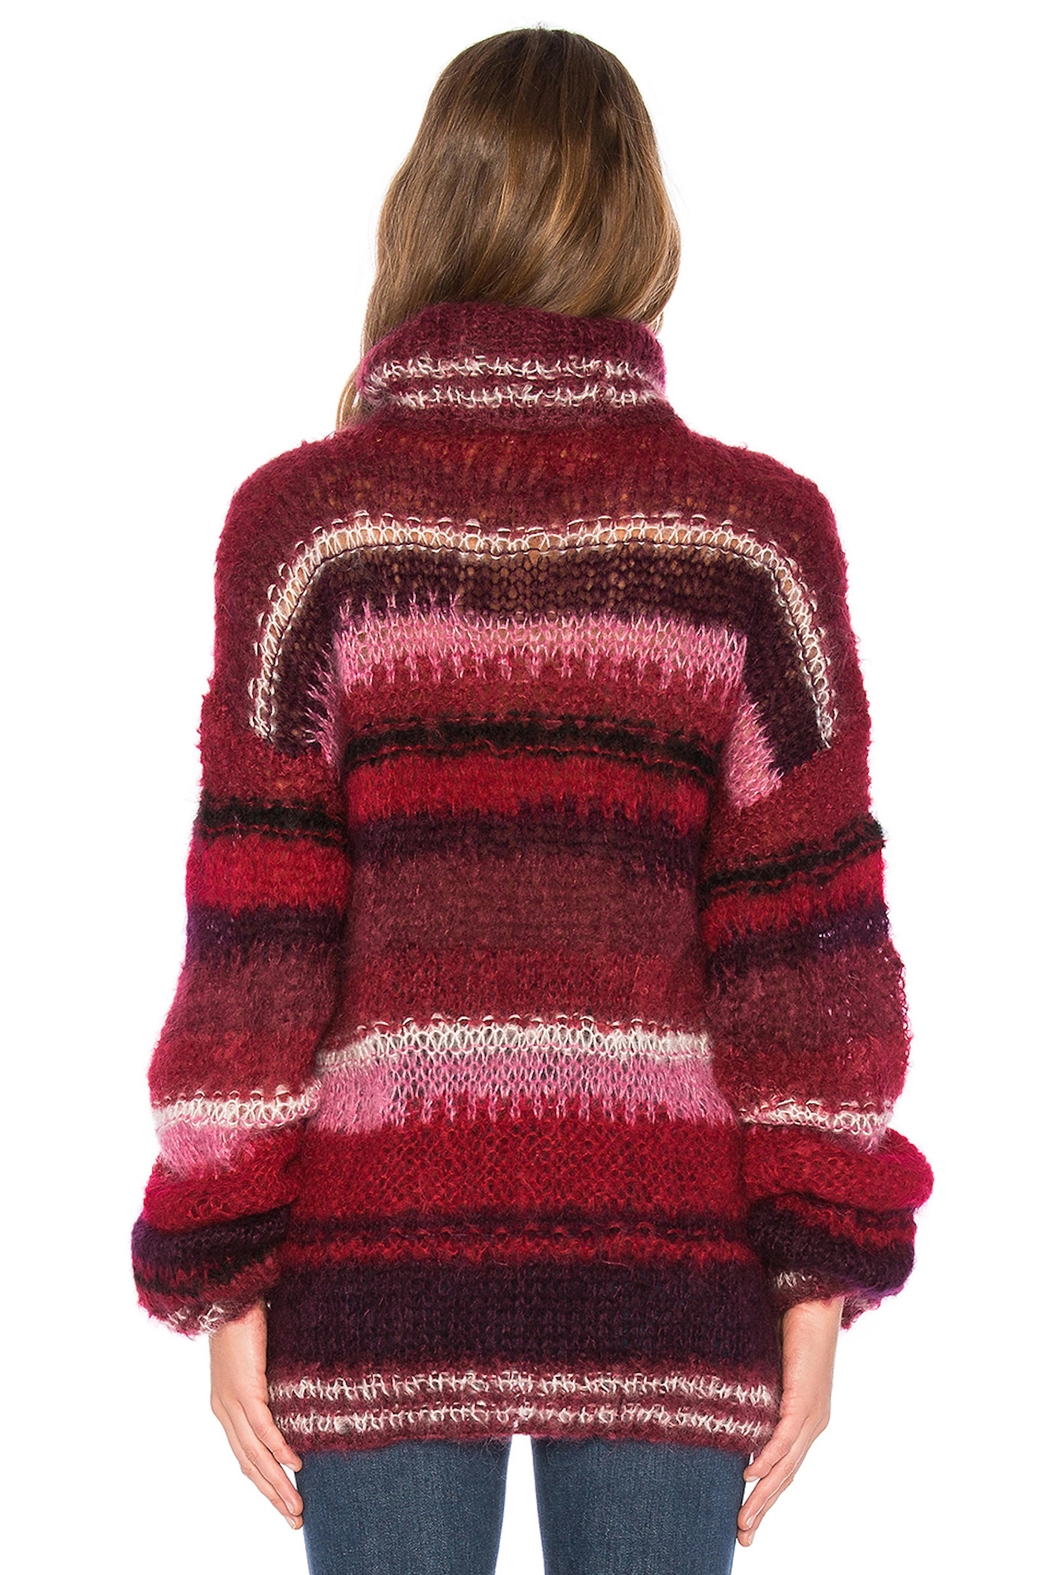 One Clothing Mohair Striped Sweater - Front Full Image